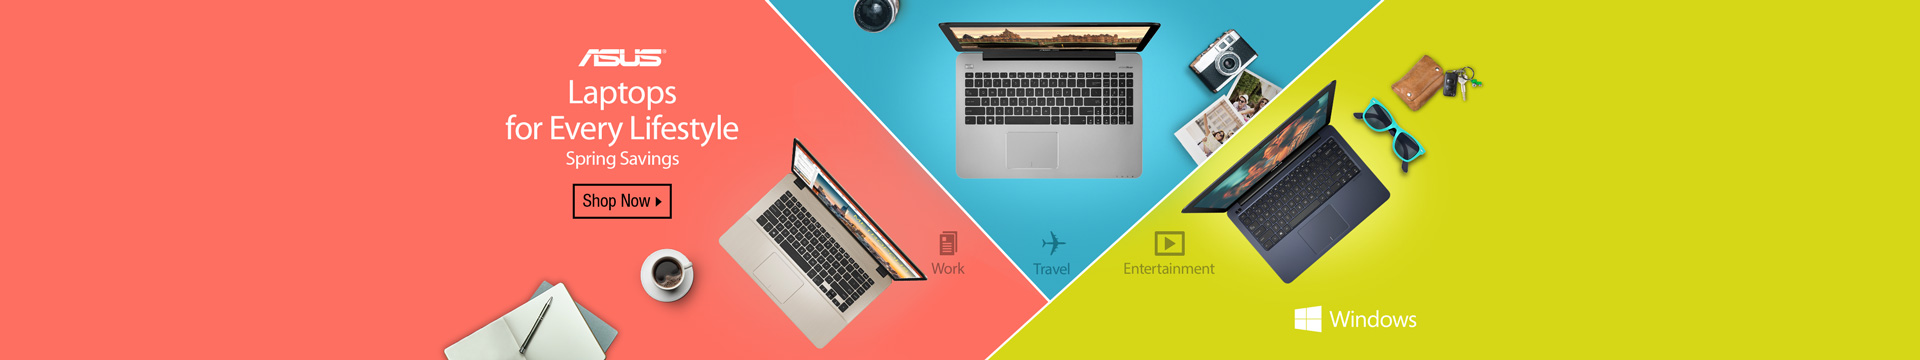 Laptops for every lifestyle spring savings